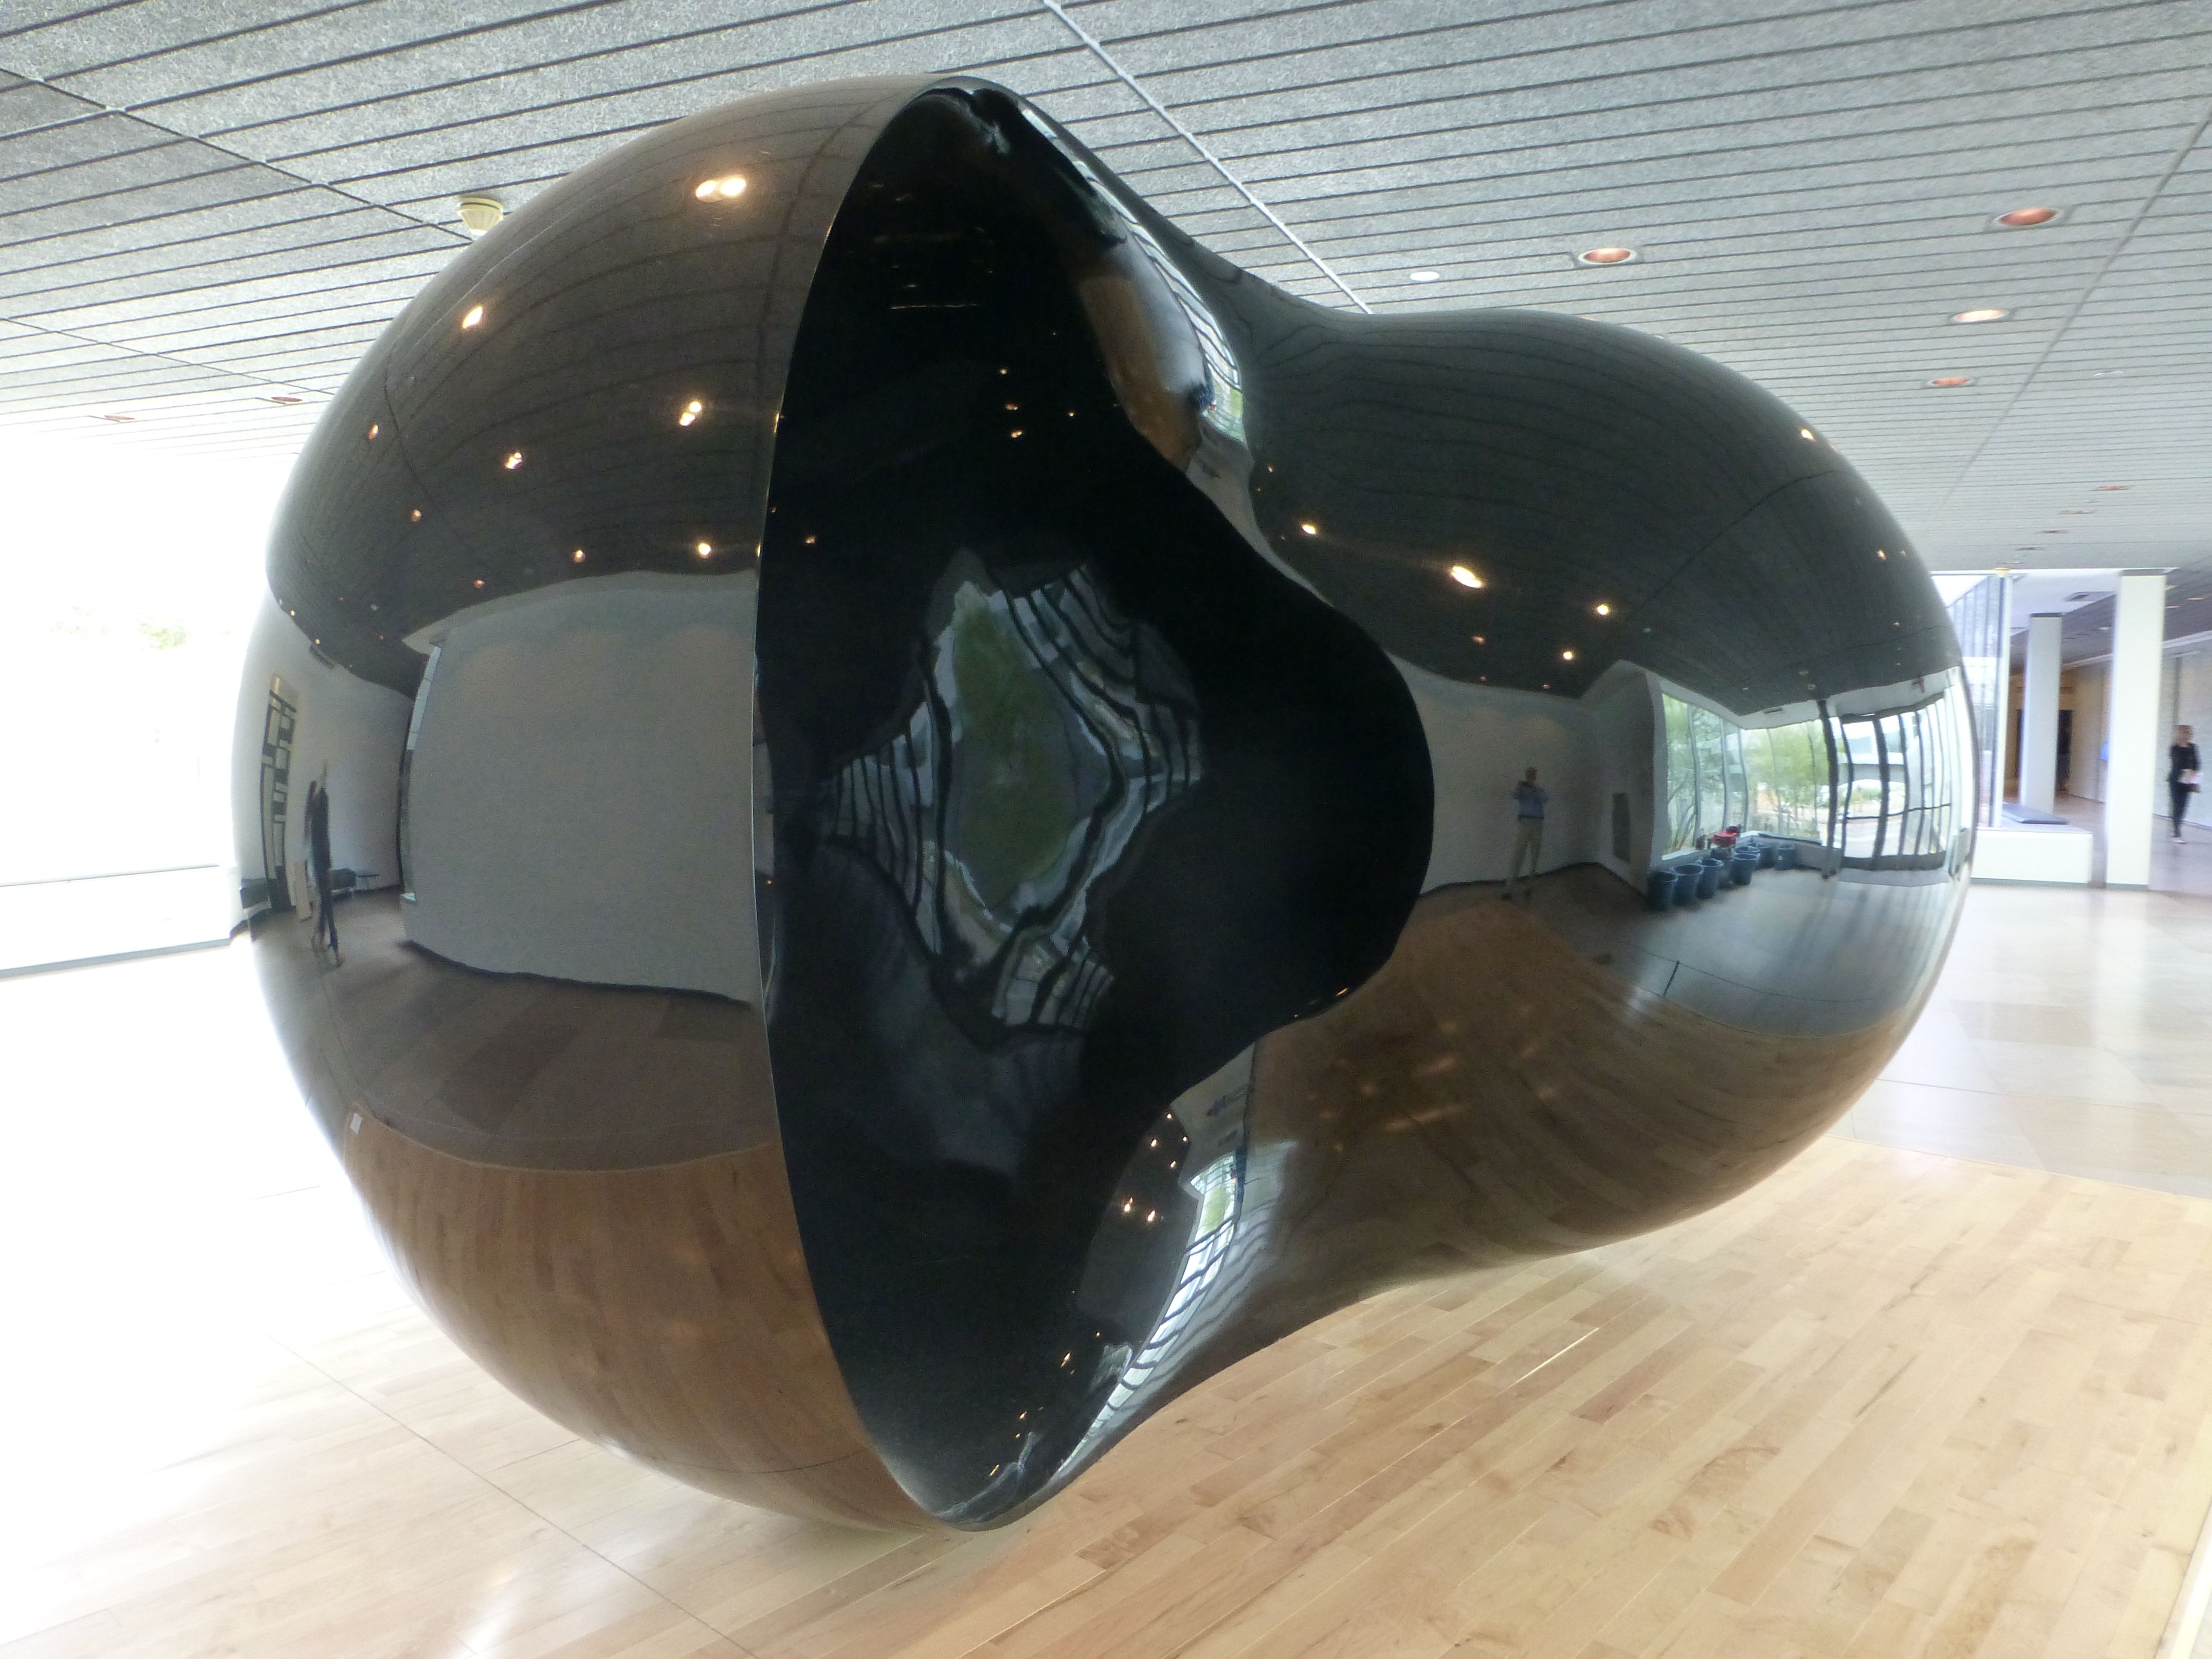 Upside Down, Inside Out, Anish Kapoor